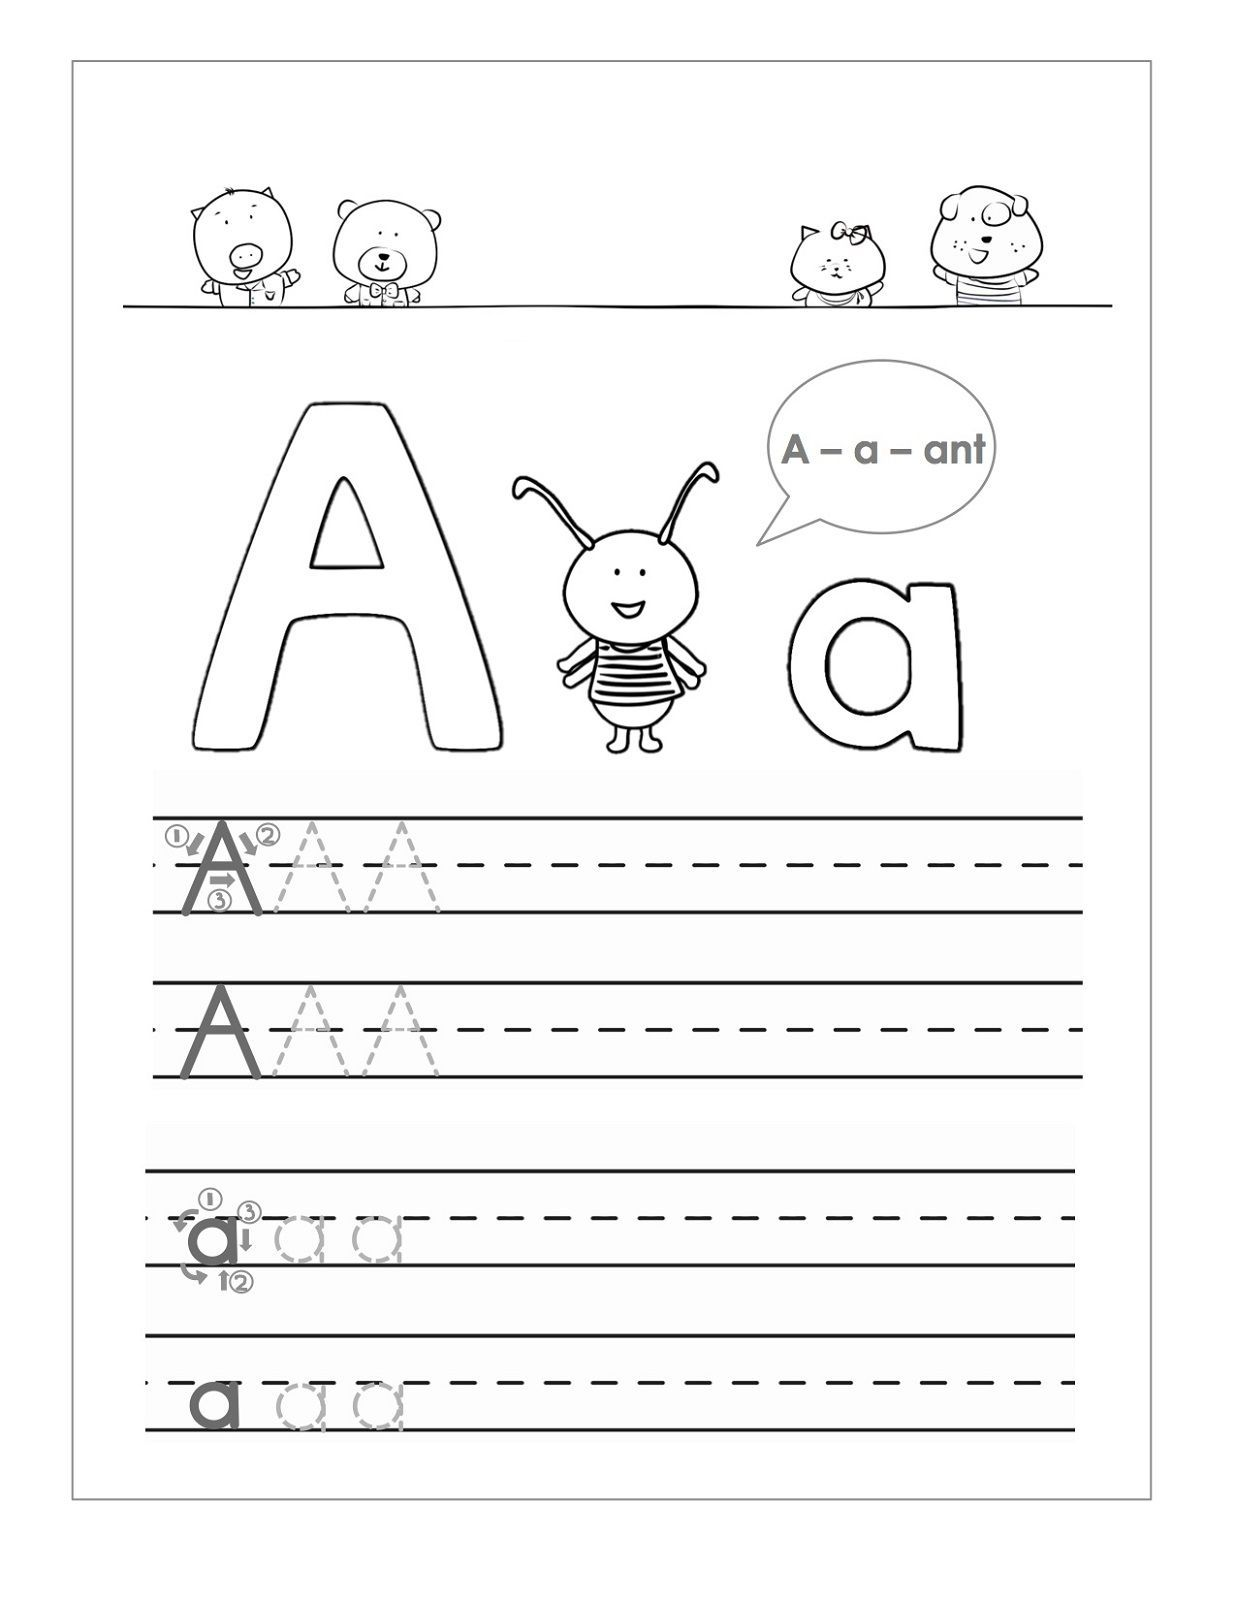 Abc Worksheets In Cpt Printable Worksheets And Activities For Teachers Parents Tutors And Homeschool Families